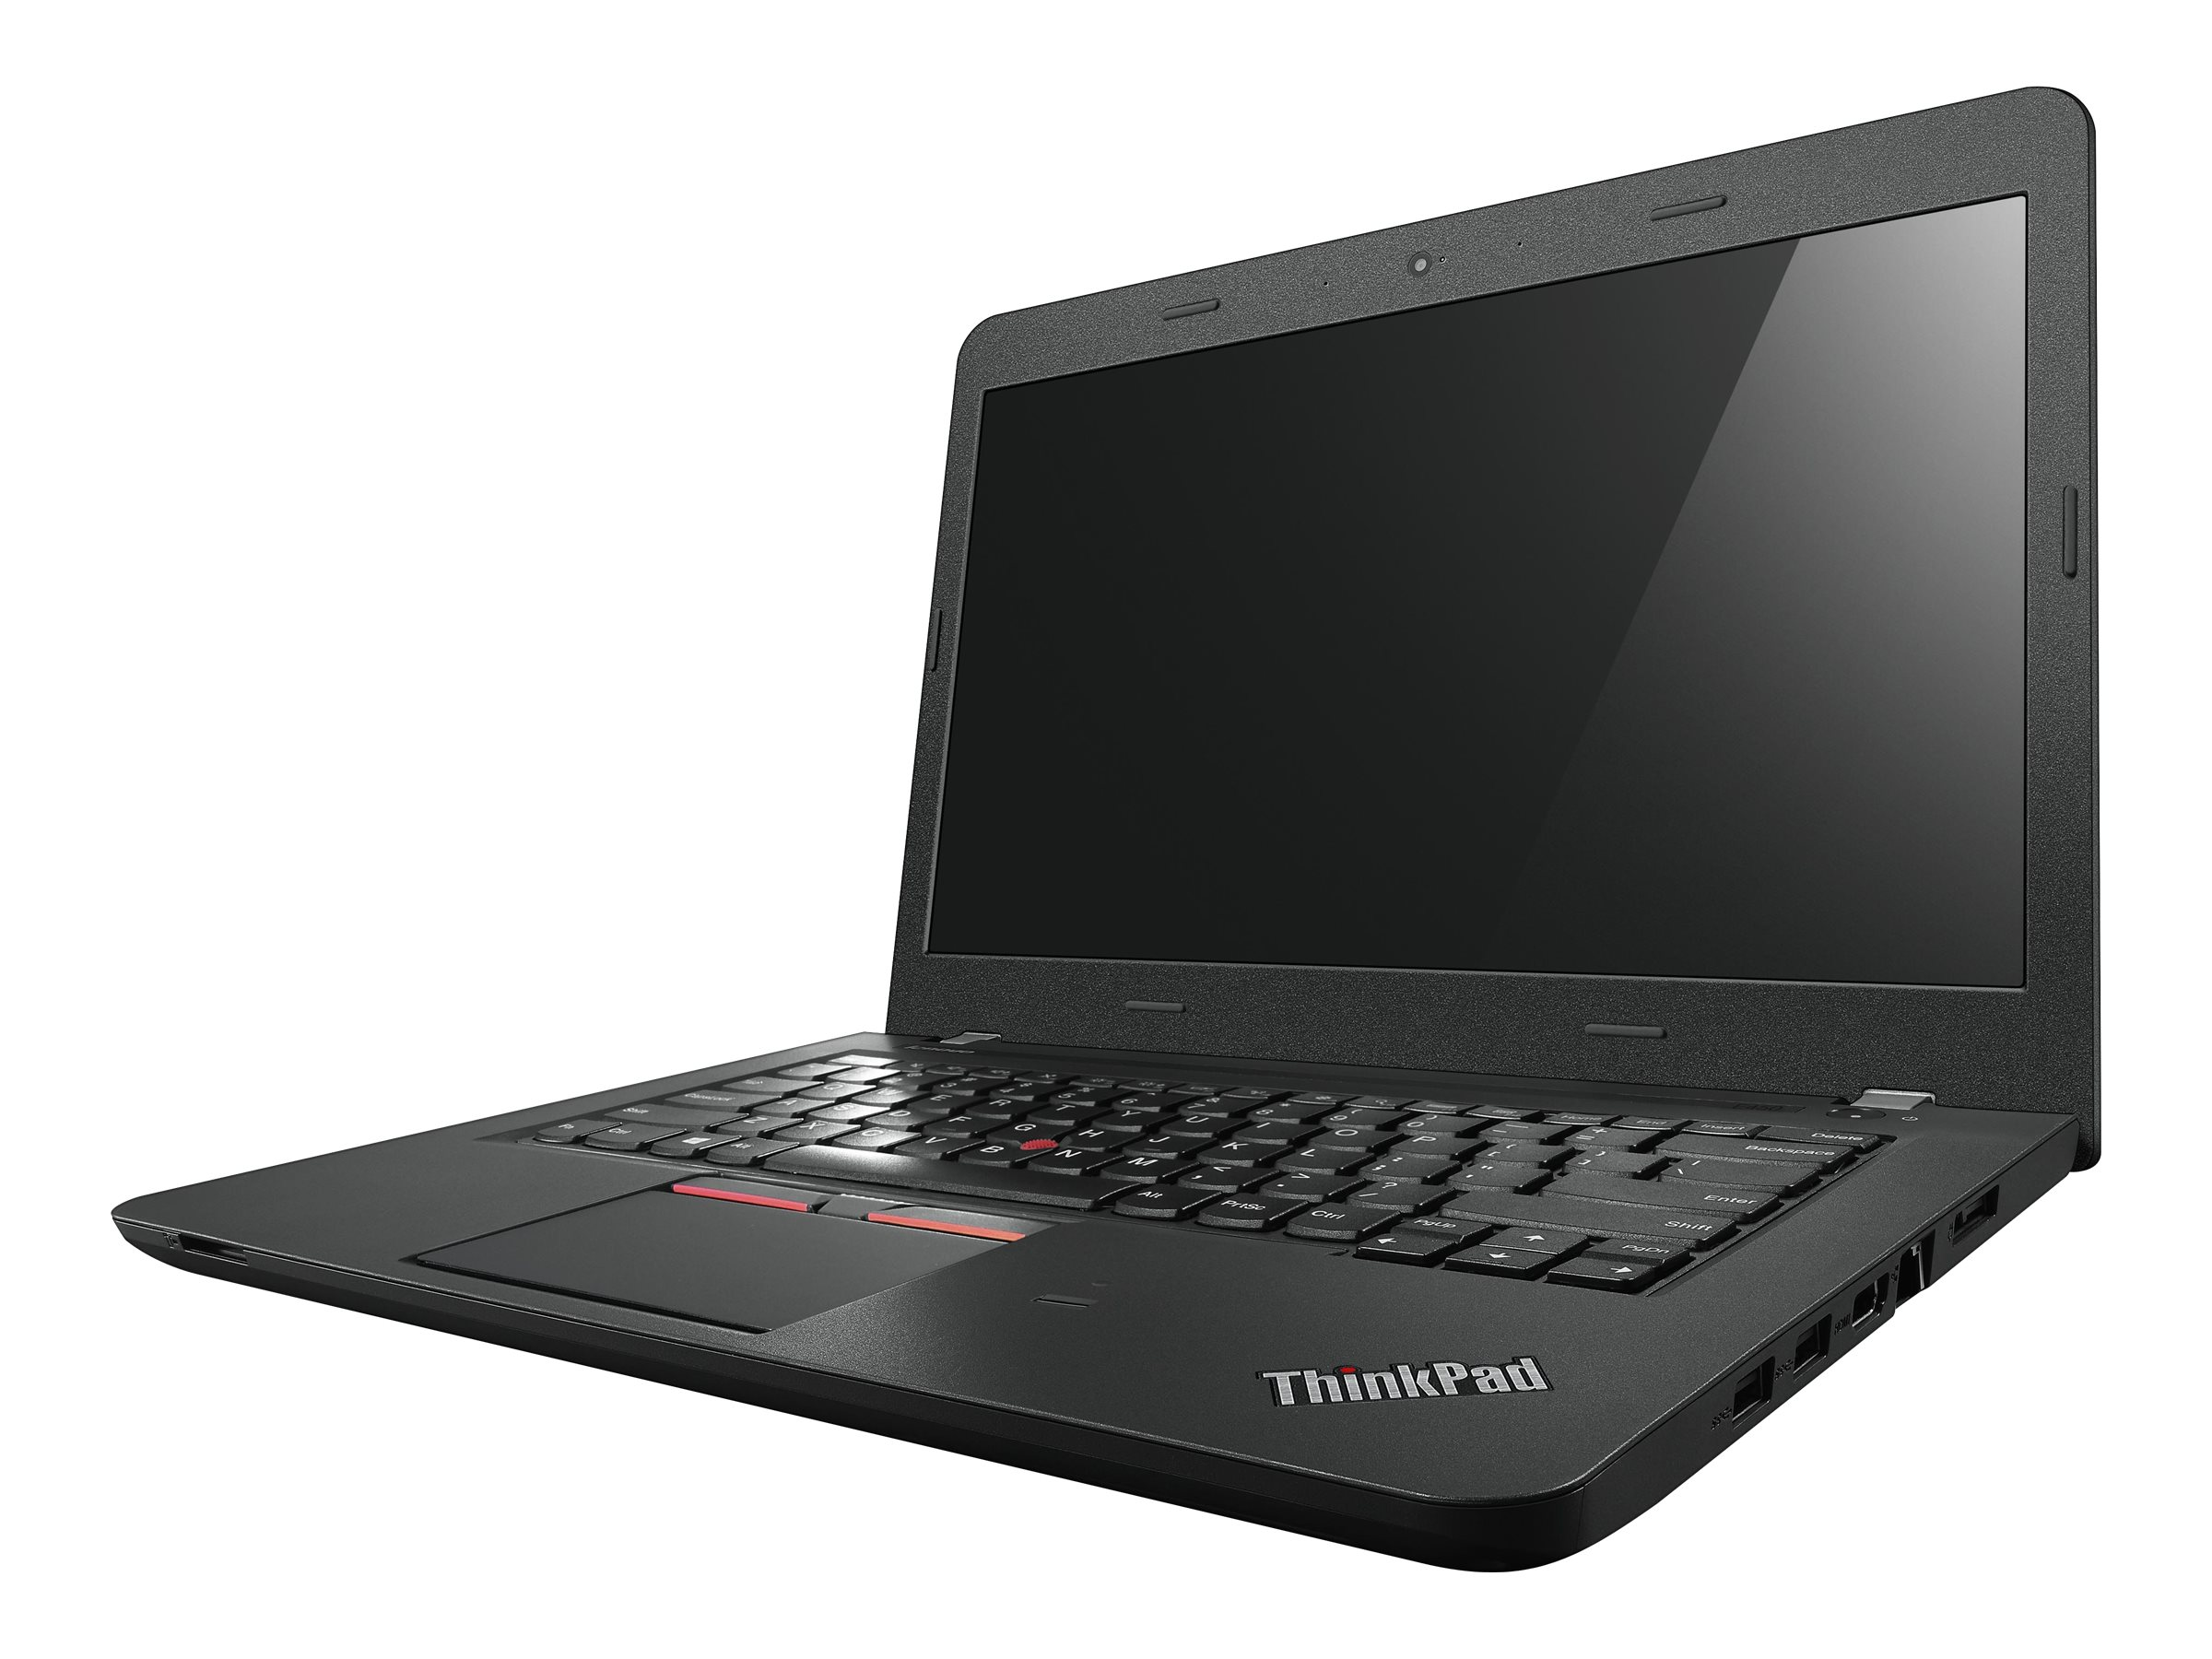 Lenovo TopSeller ThinkPad E450 2.2GHz Core i5 14in display, 20DC004CUS, 18382705, Notebooks